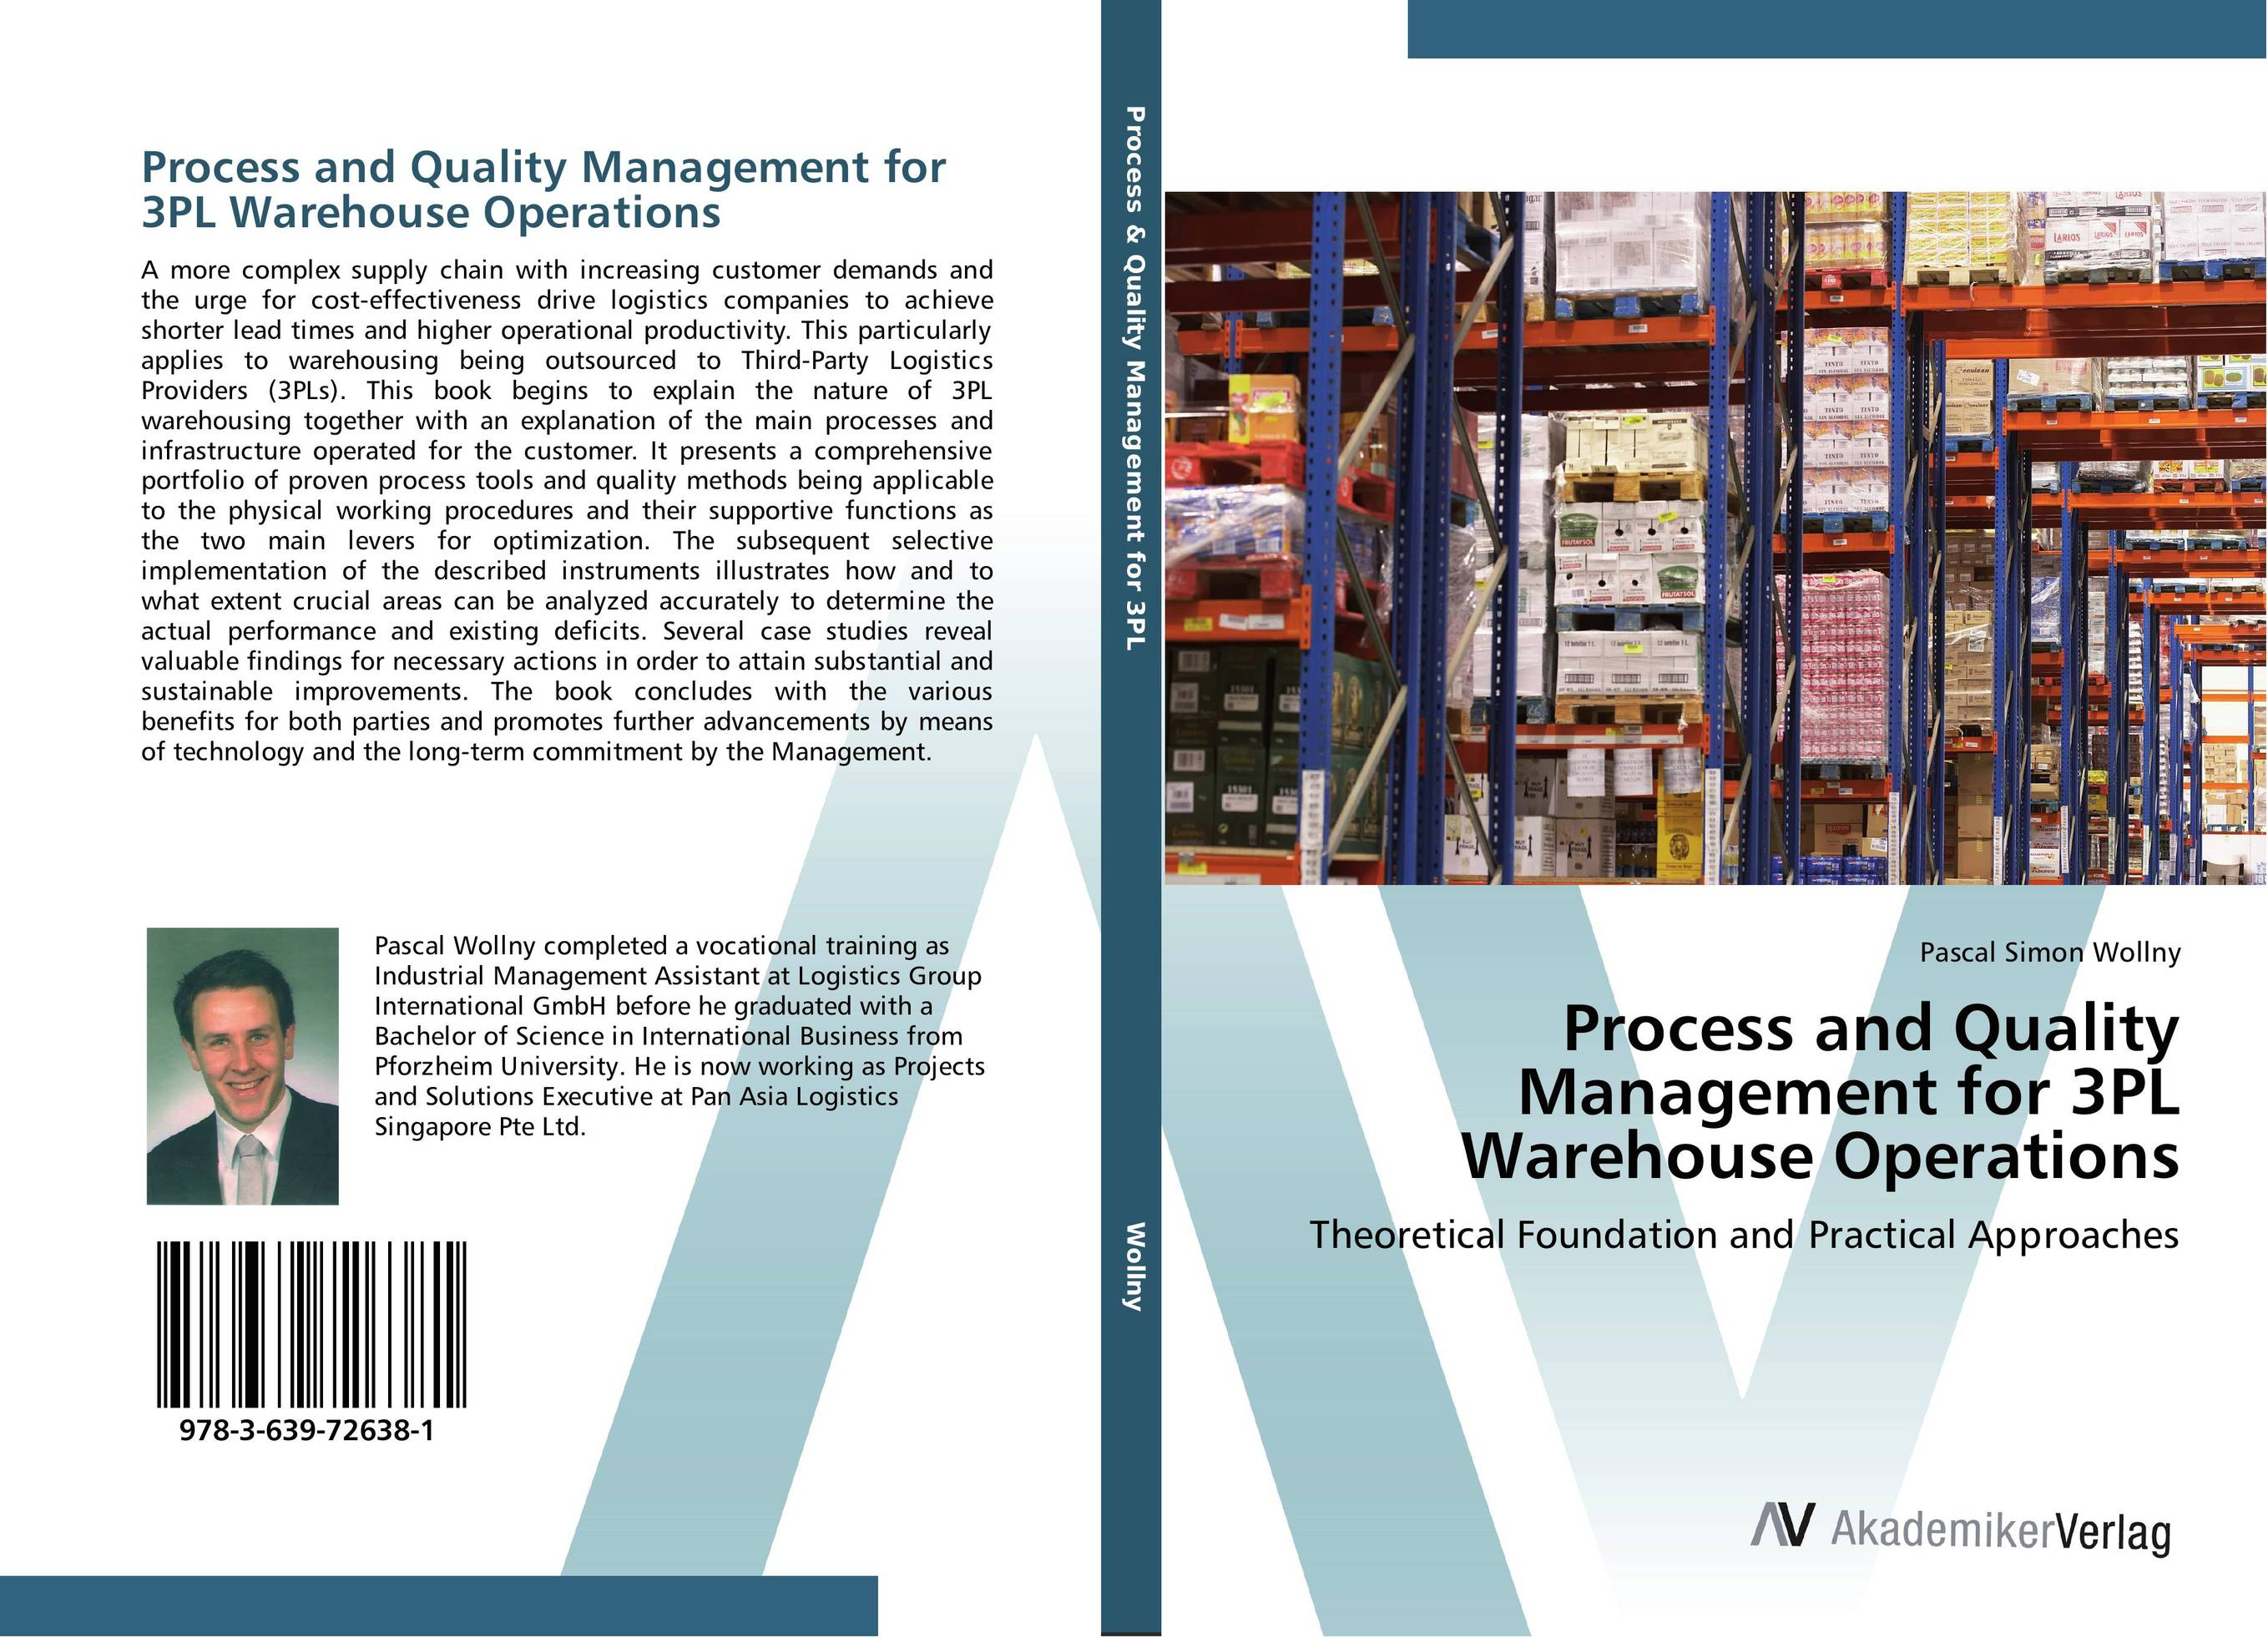 Process and Quality Management for 3PL Warehouse Operations charles chase w next generation demand management people process analytics and technology